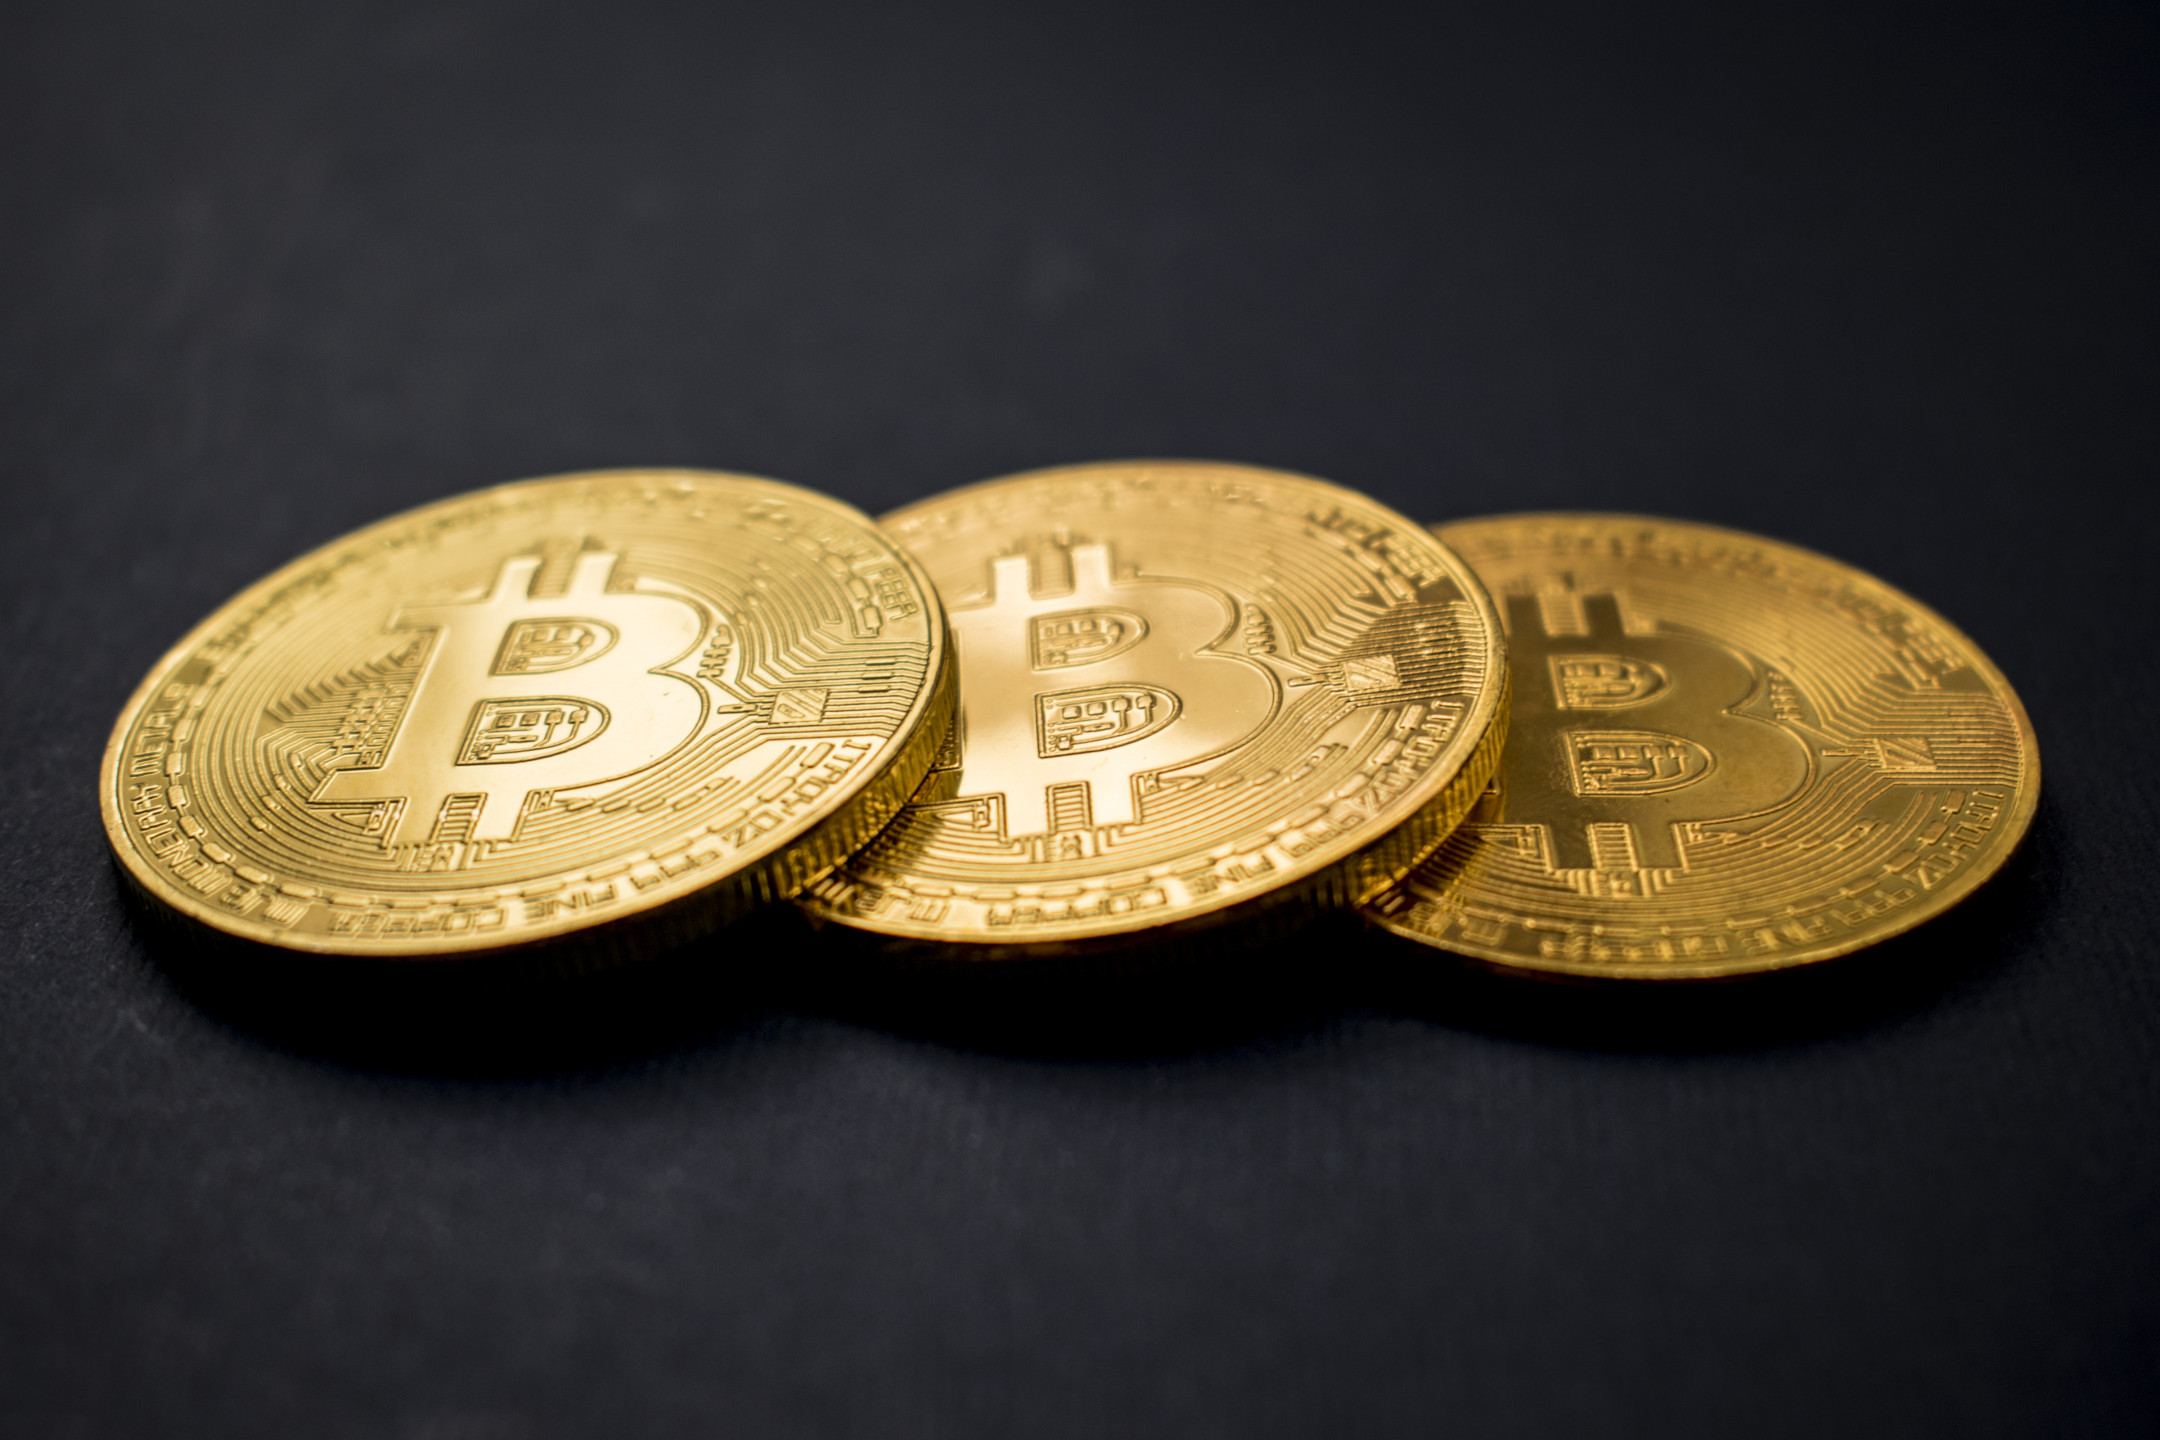 World Bank and IMF launch Learning crypto coin